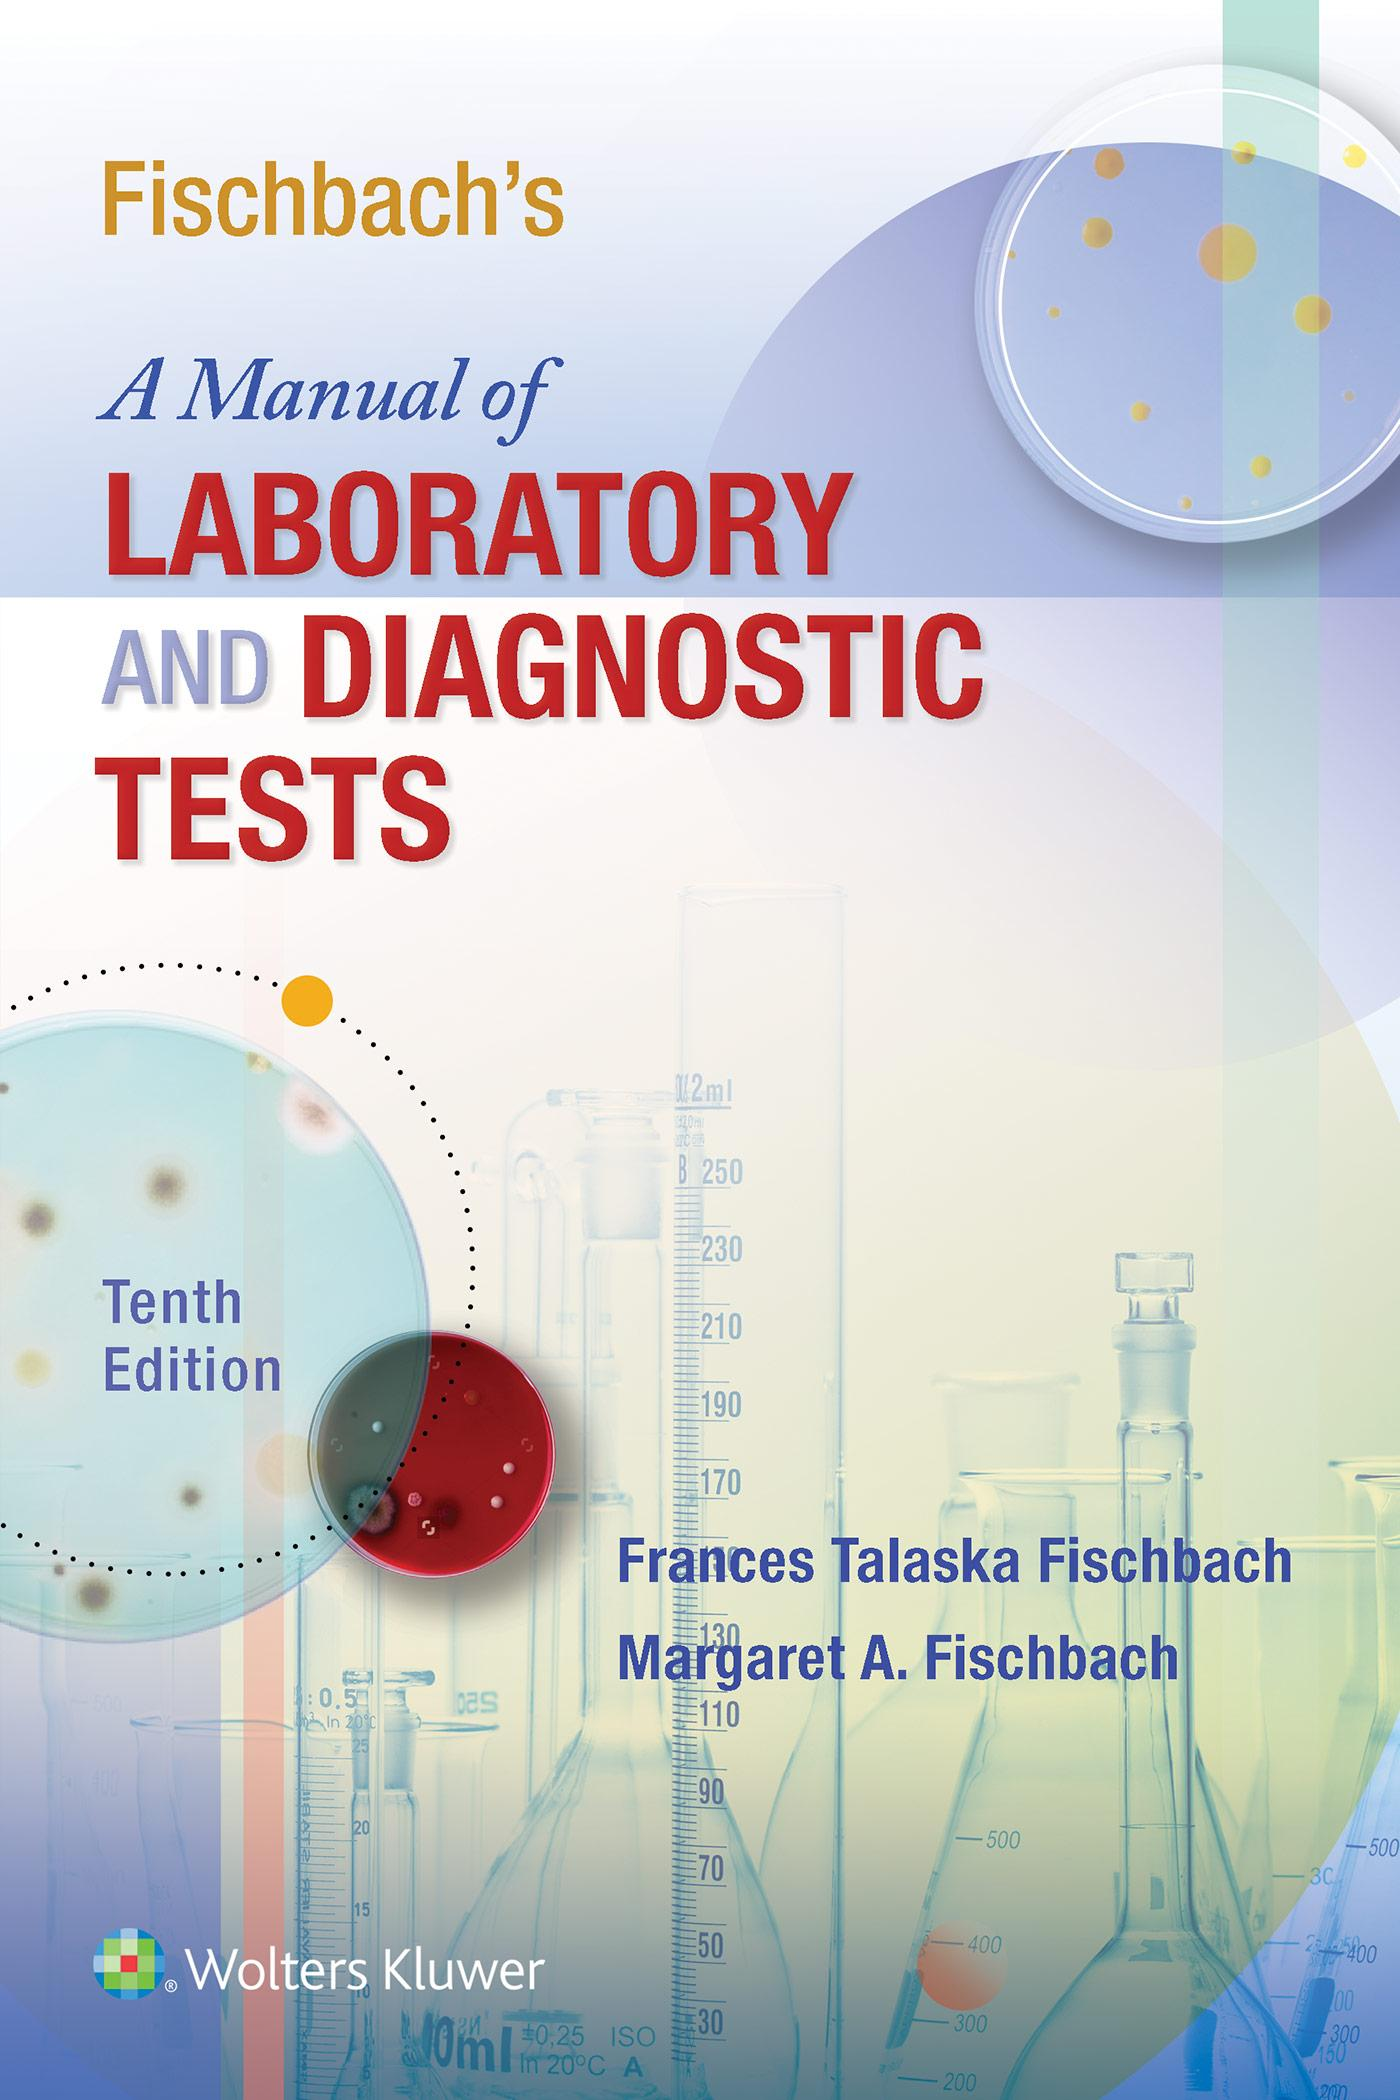 Fischbach's a Manual of Laboratory and Diagnostic Tests (Other) -  Walmart.com